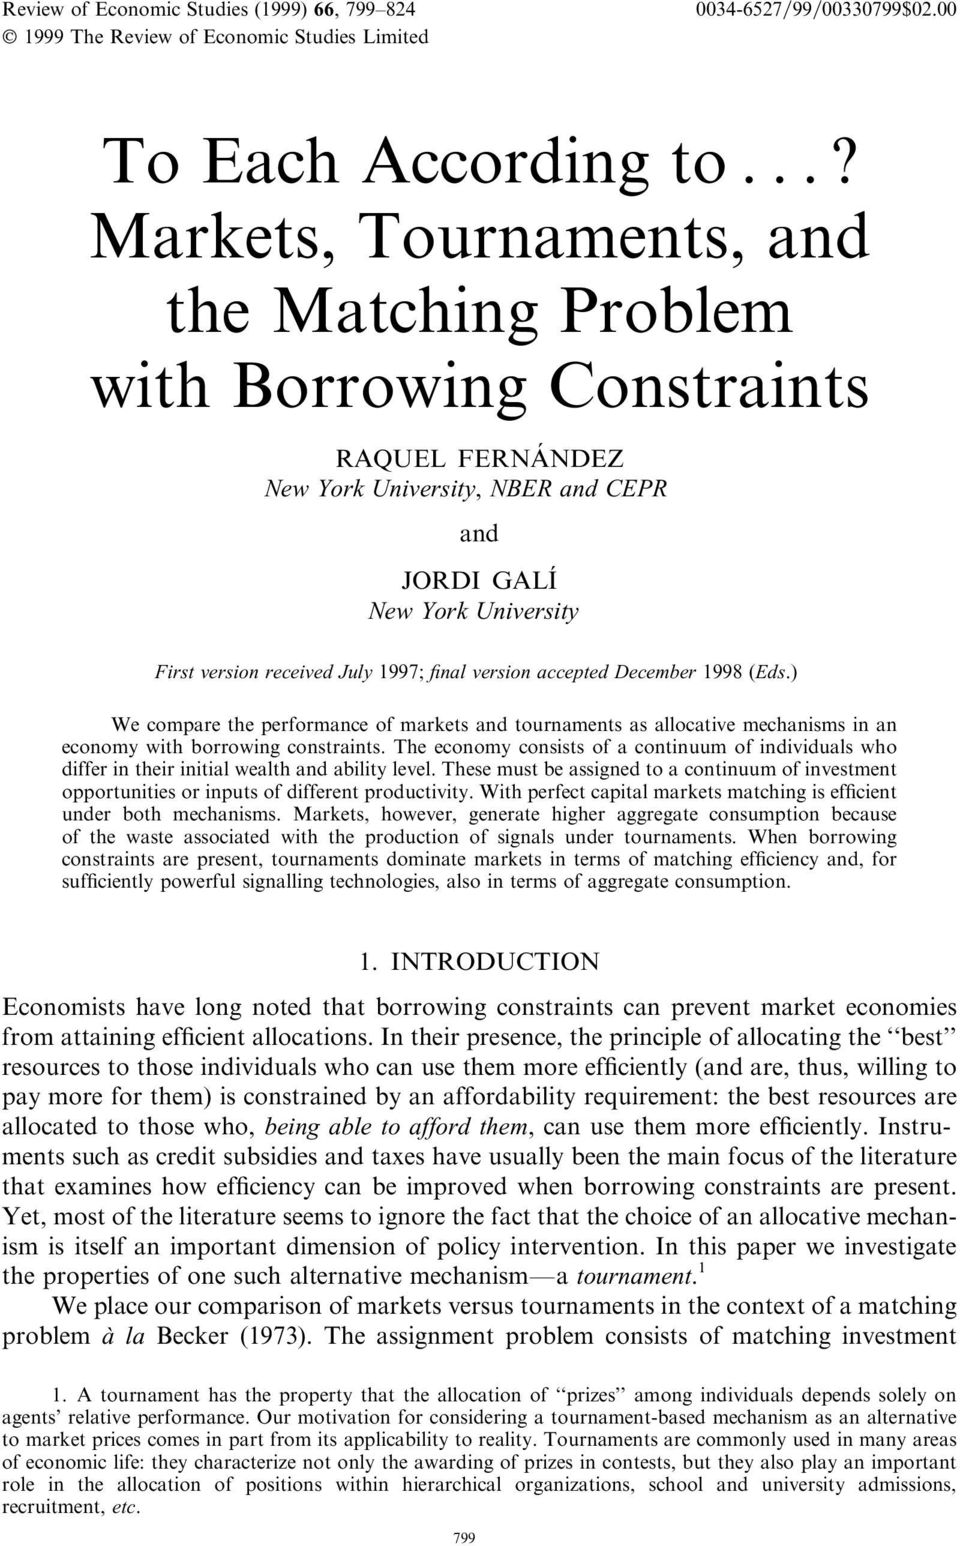 final version accepted December 1998 (Eds.) We compare the performance of markets and tournaments as allocative mechanisms in an economy with borrowing constraints.